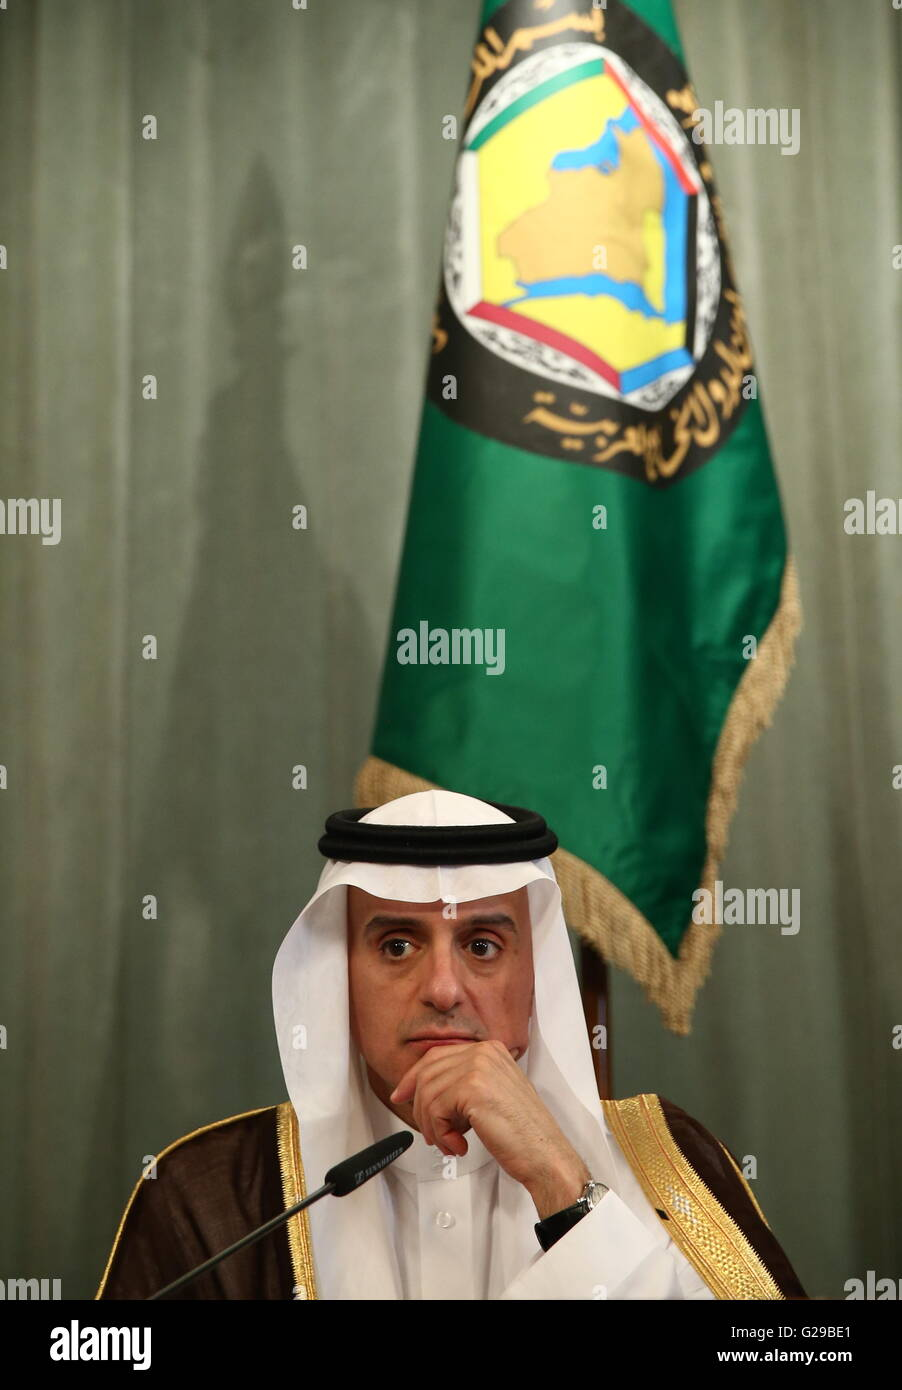 Moscow, Russia. 26th May, 2016. Saudi Arabia's Foreign Minister Adel bin Ahmed Al-Jubeir looks on during a press - Stock Image